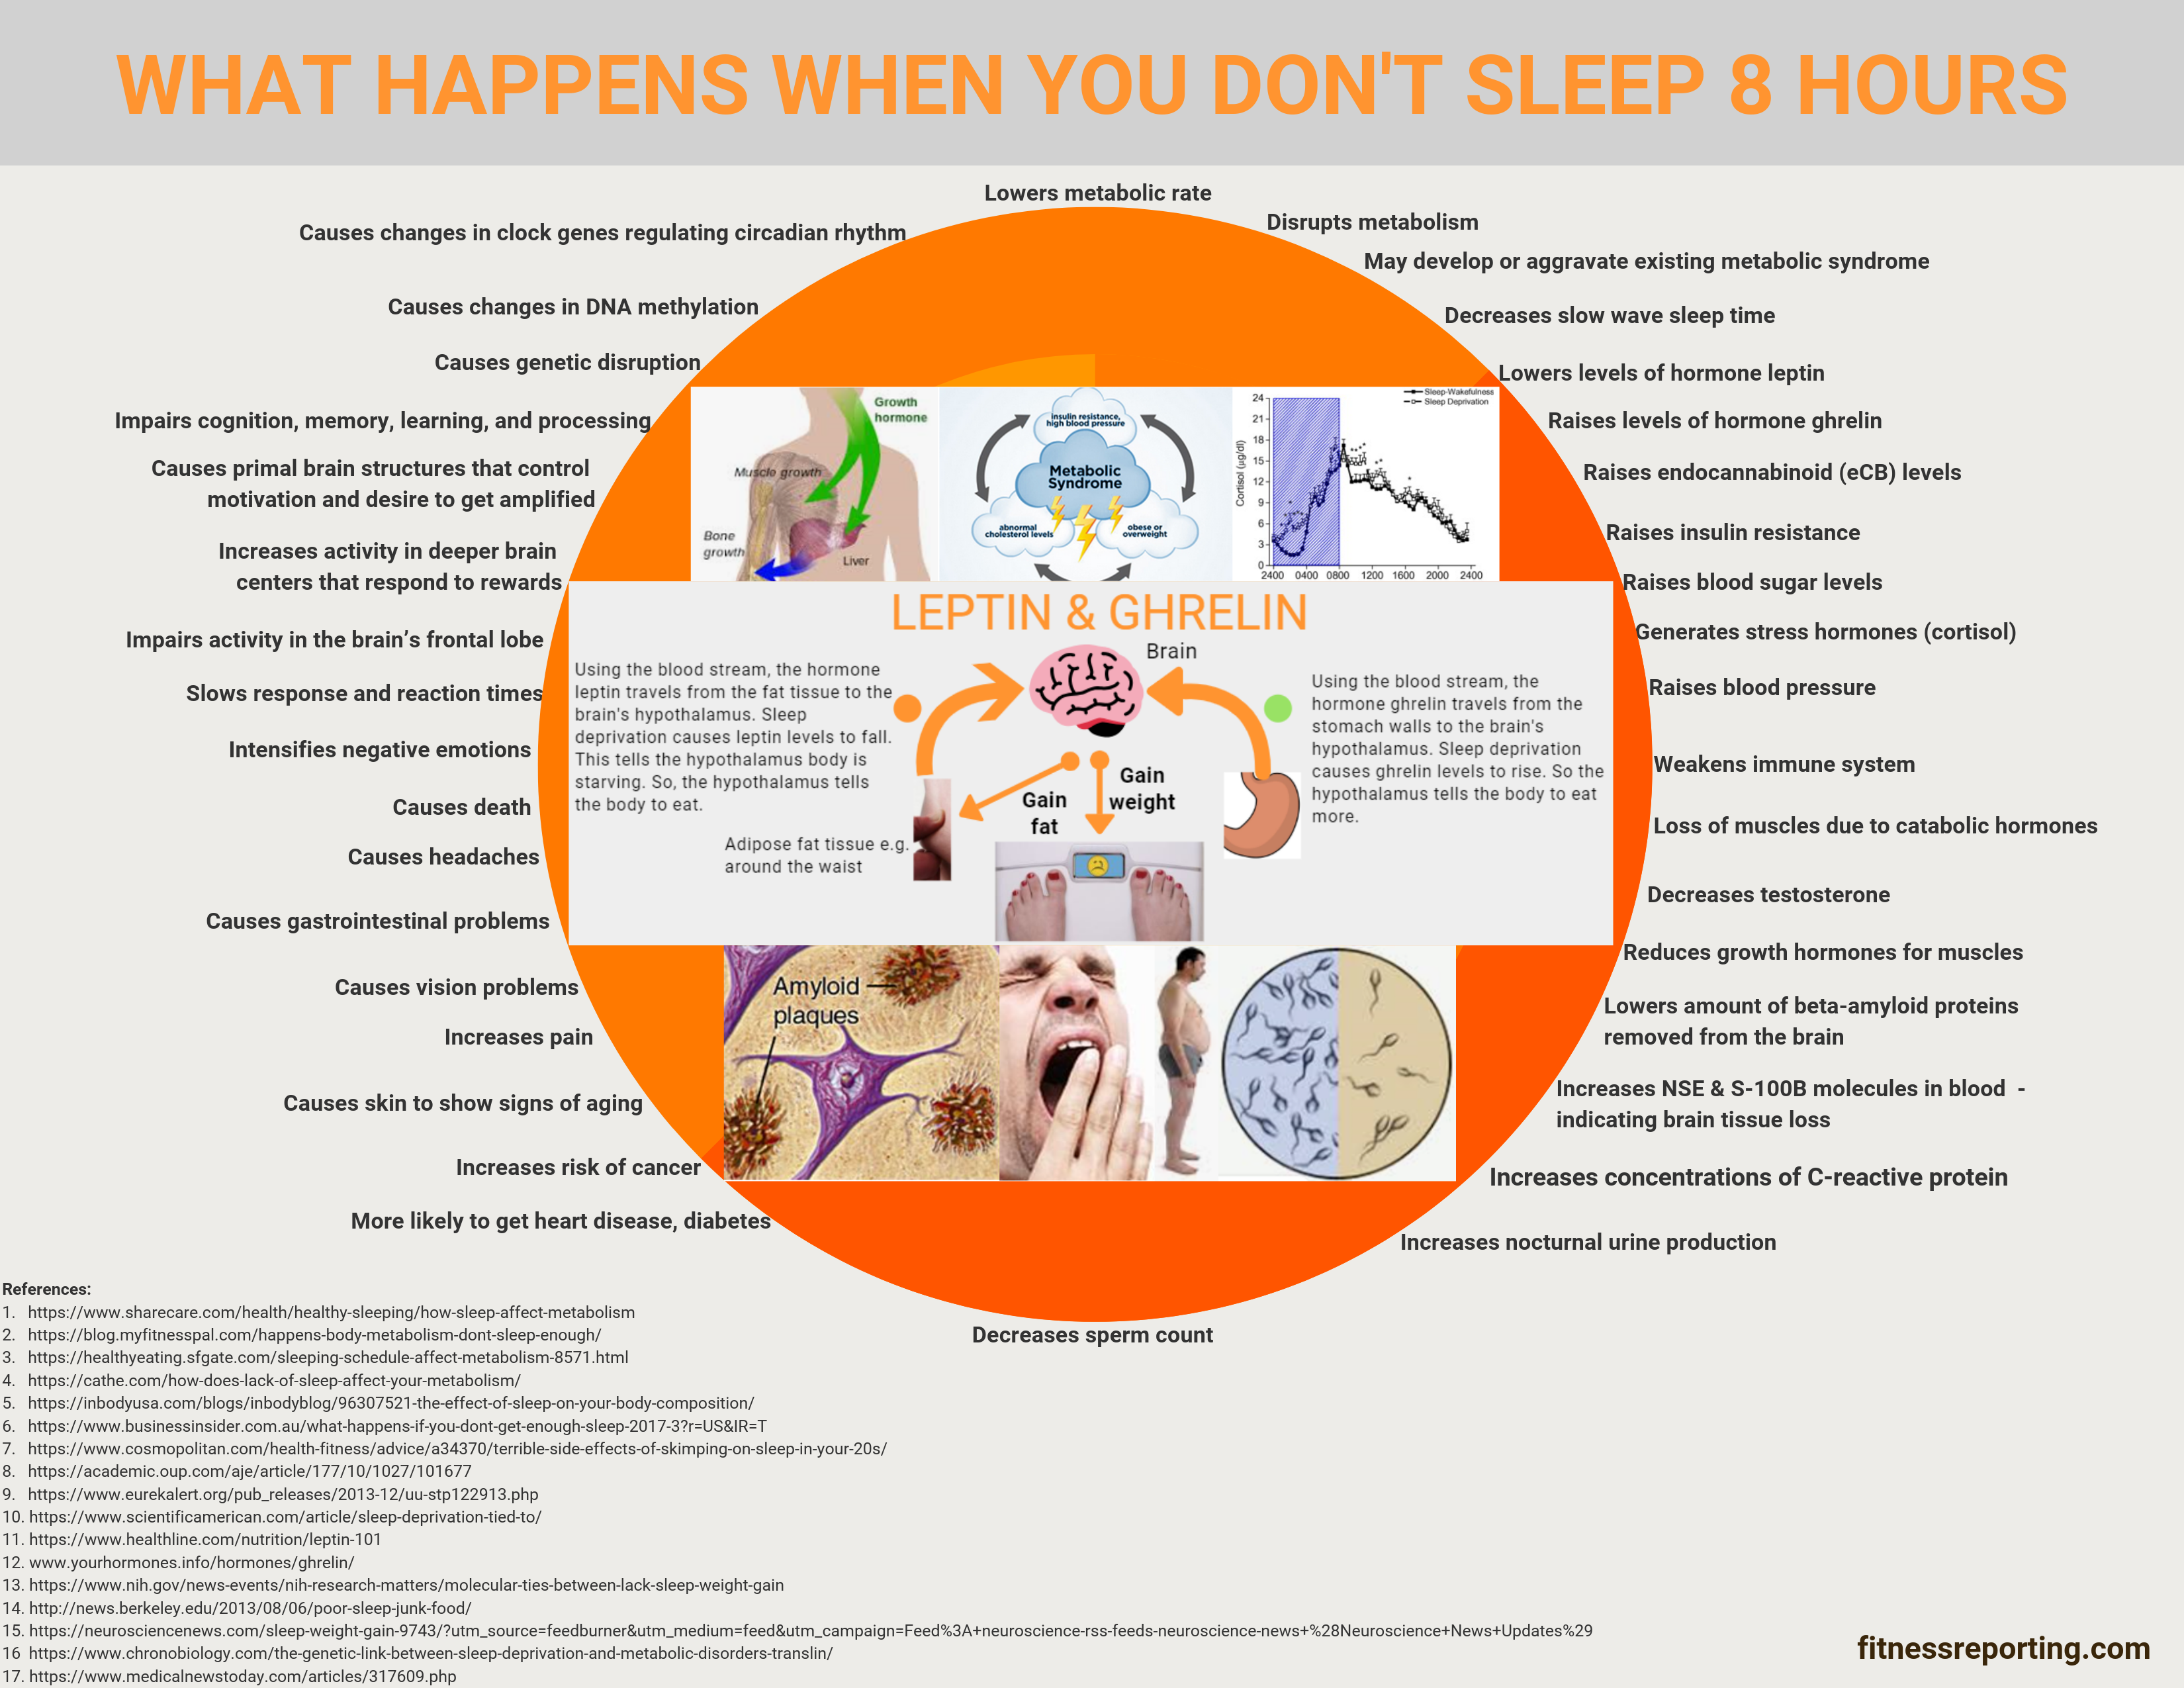 37 Reasons Why Not Sleeping 8-Hours Daily is a Bad Idea! - Infographic